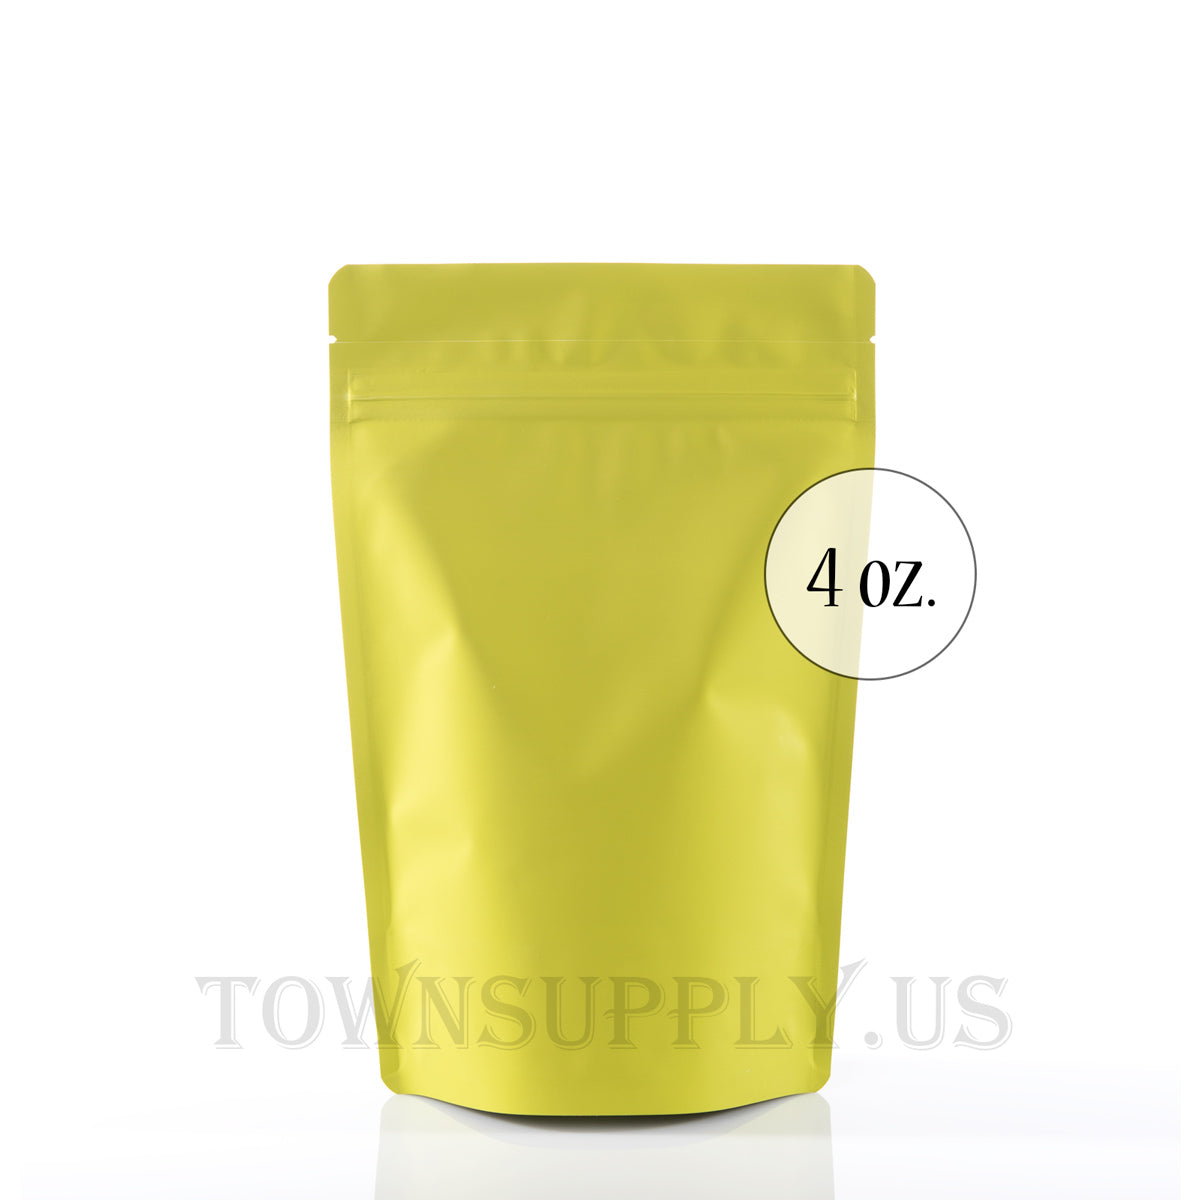 chartreuse resealable stand up pouch, 4 oz. storage bags - Town Supply